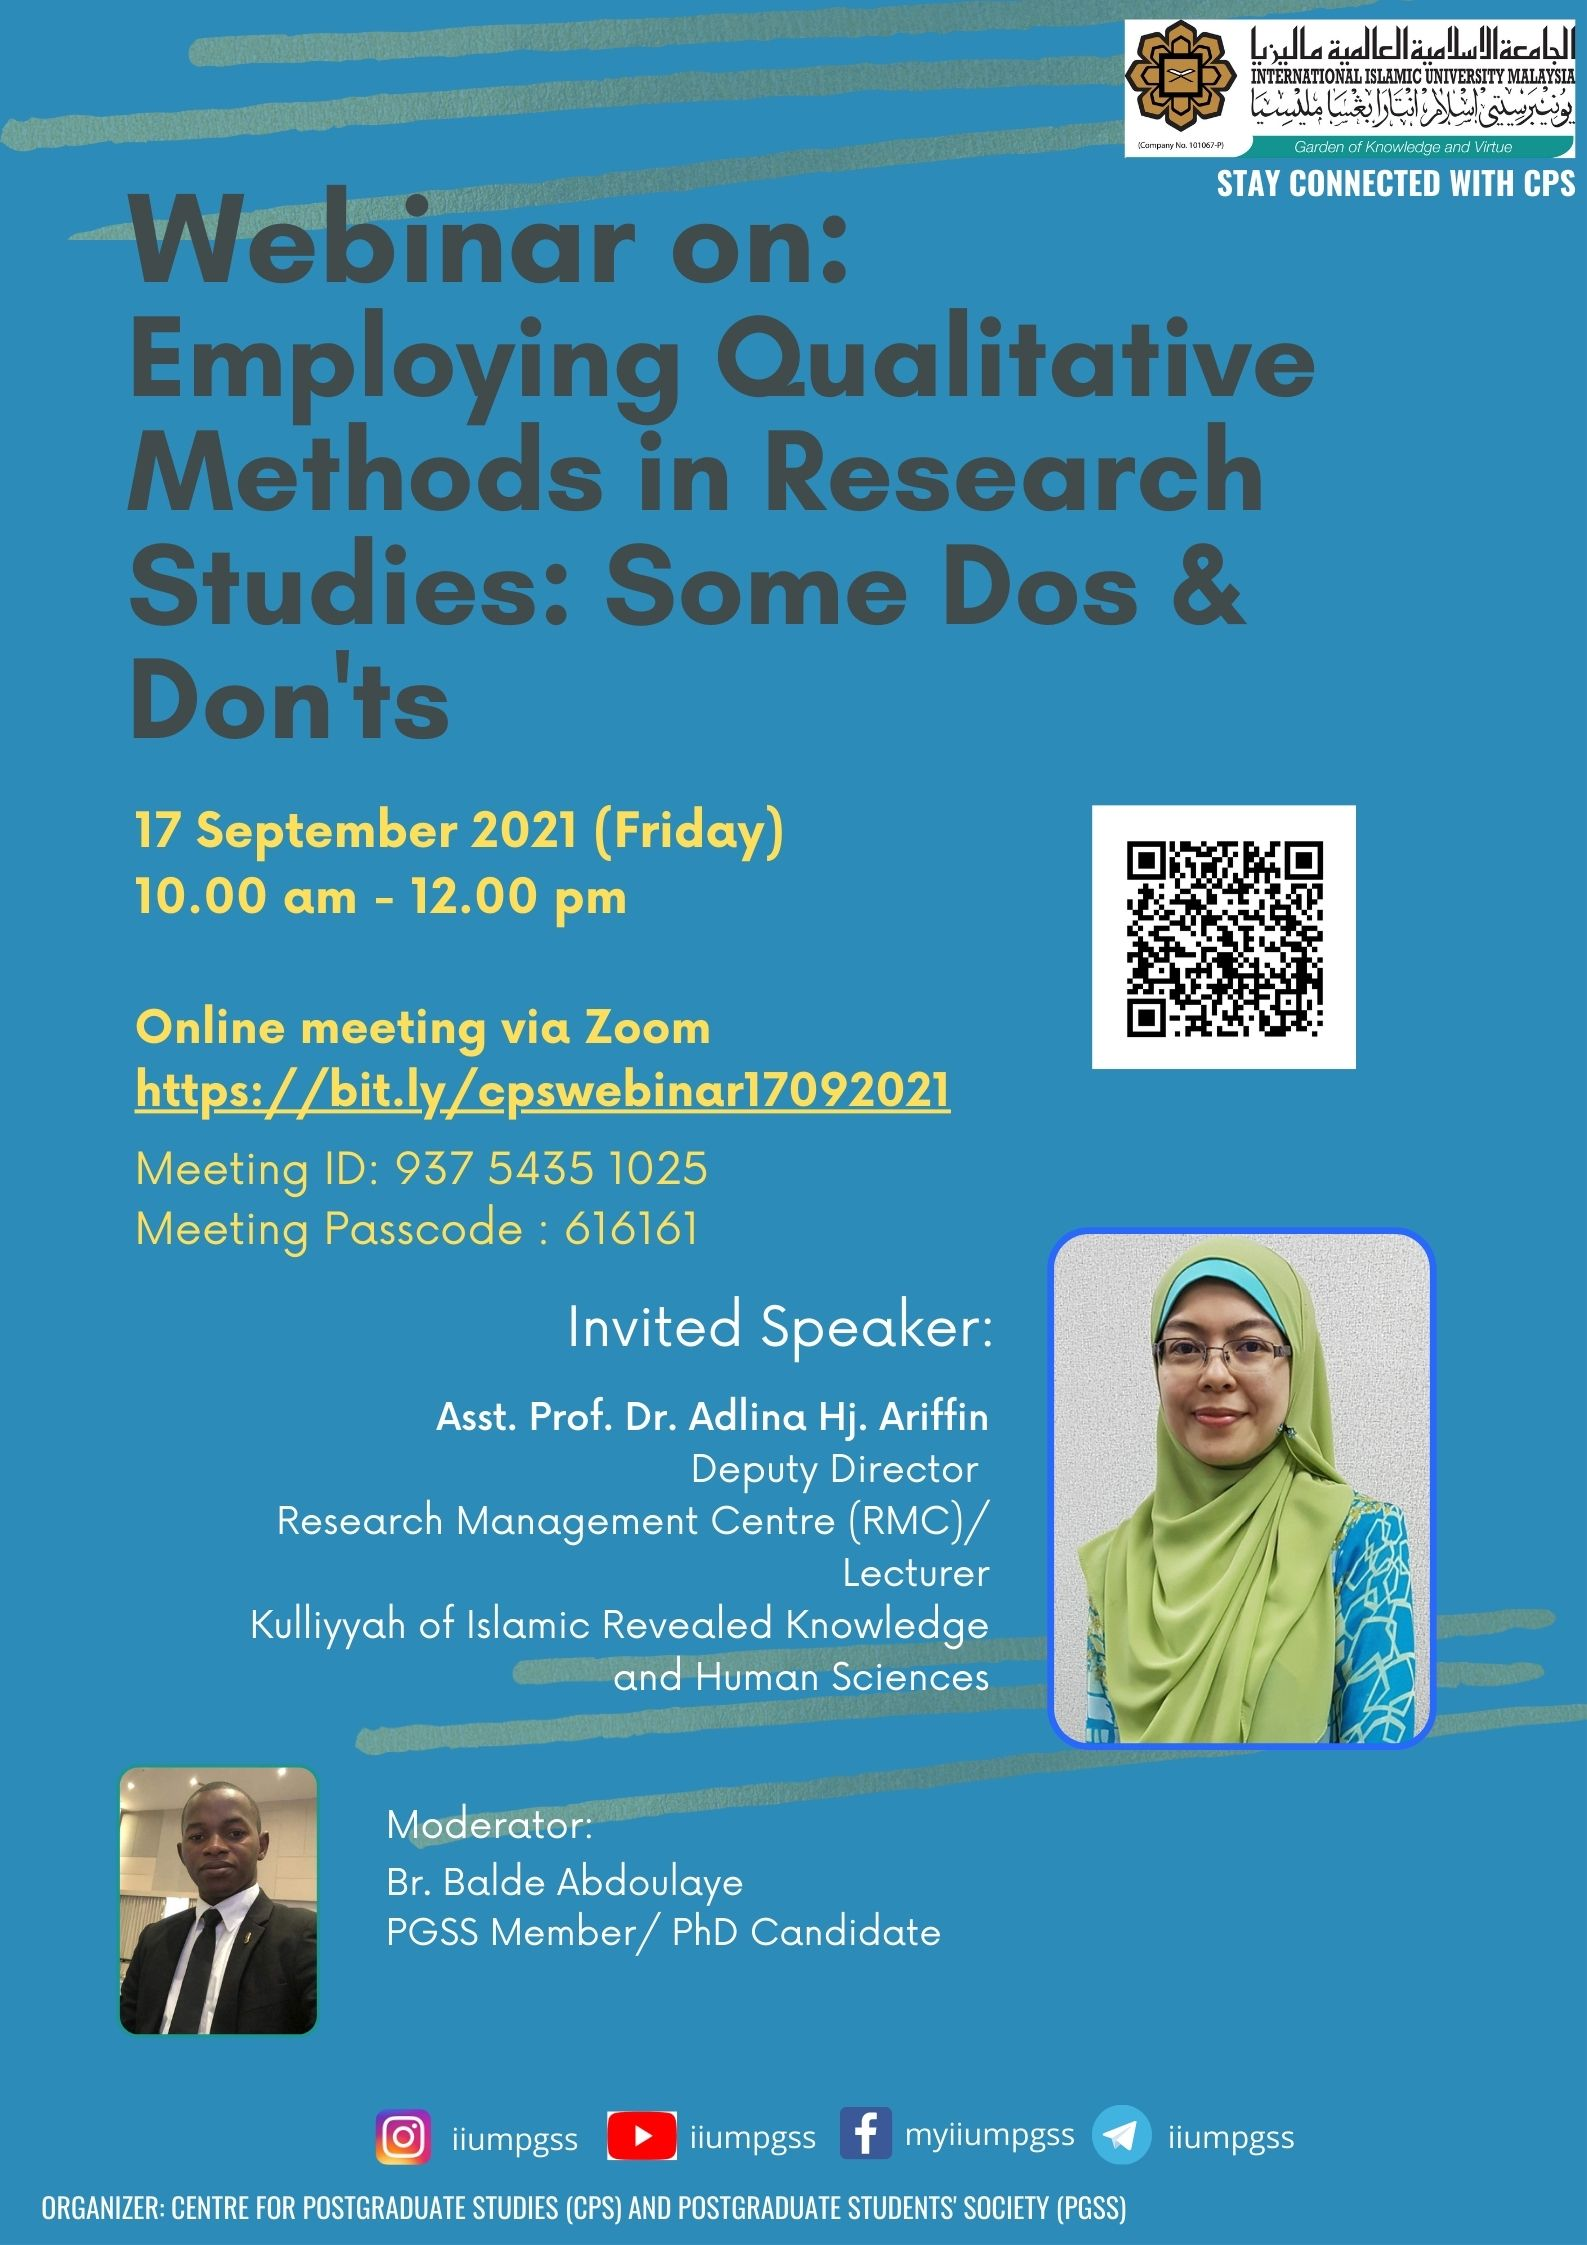 WEBINAR ON EMPLOYING QUALITATIVE METHODS IN RESEARCH STUDIES: SOME DOS & DONT'S